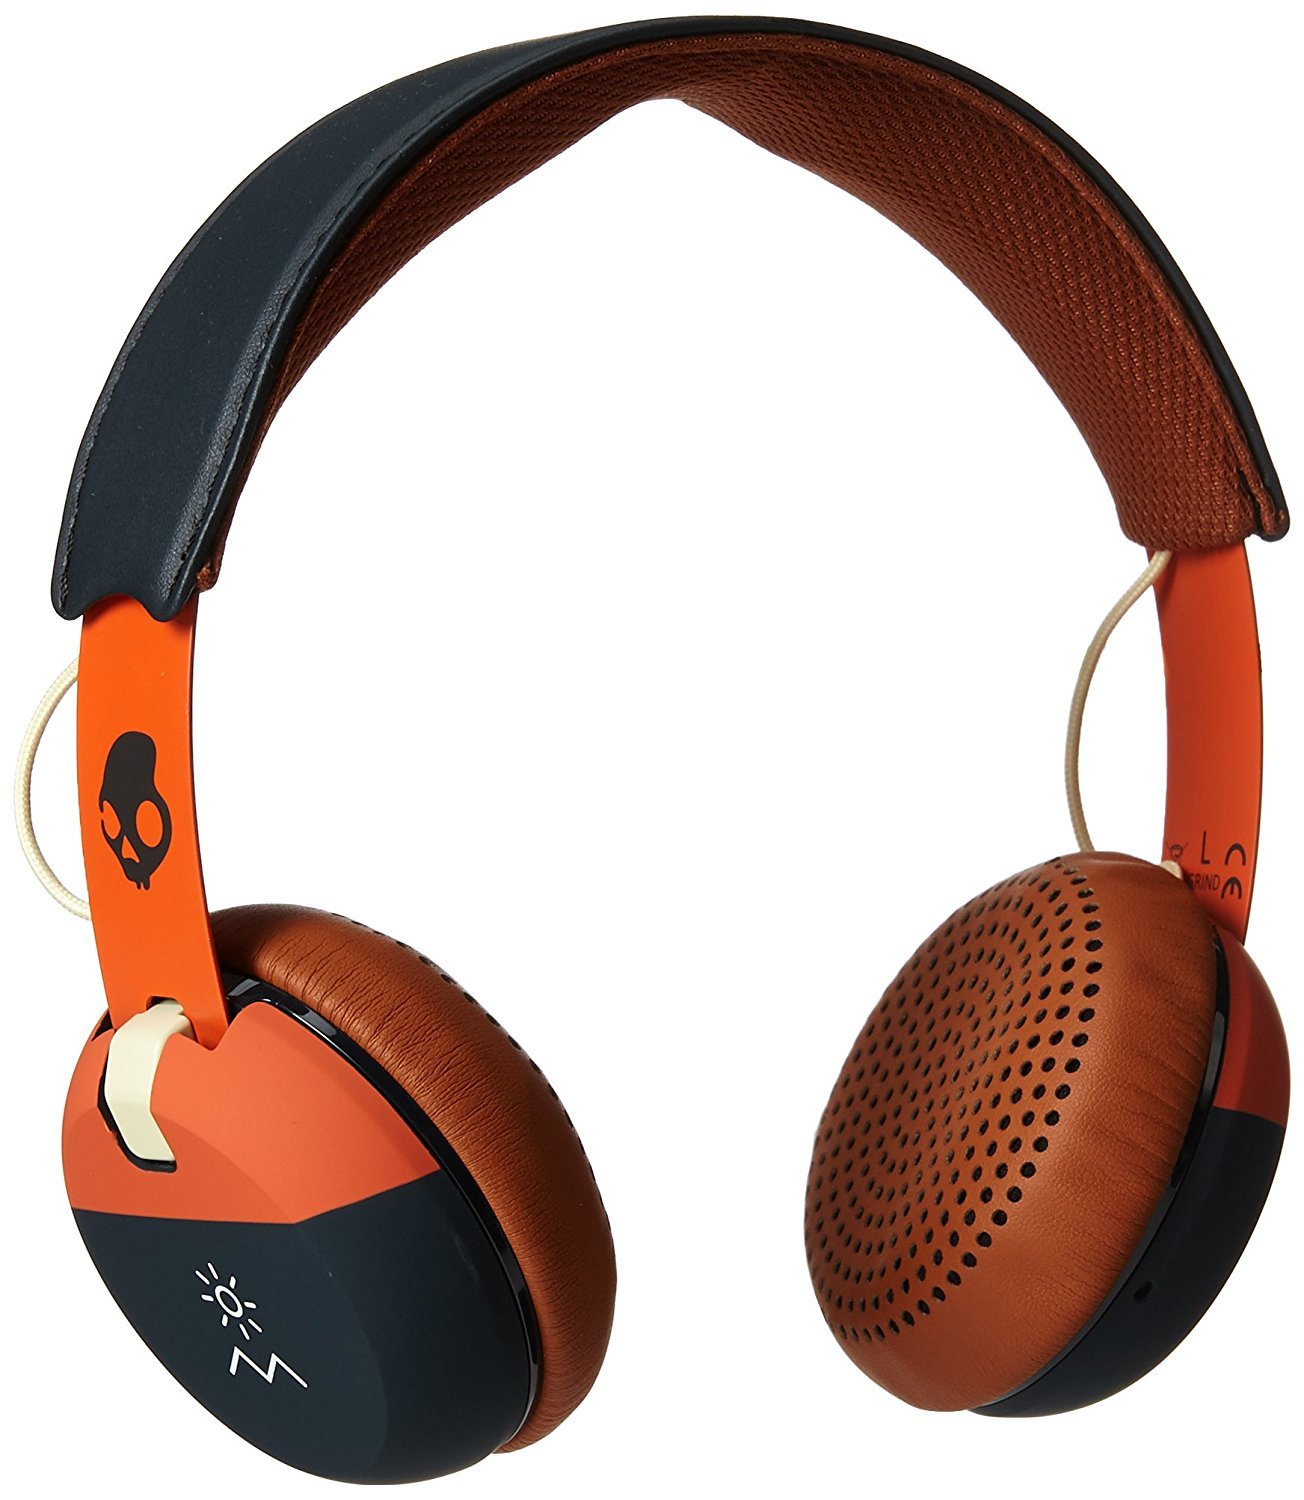 Skullcandy Grind On-Ear Headphones with Built-In Microphone, Supreme Sound with Powerful Bass, Low Profile Design, Plush On-Ear Cushions and Durable Metal Headband by Skullcandy